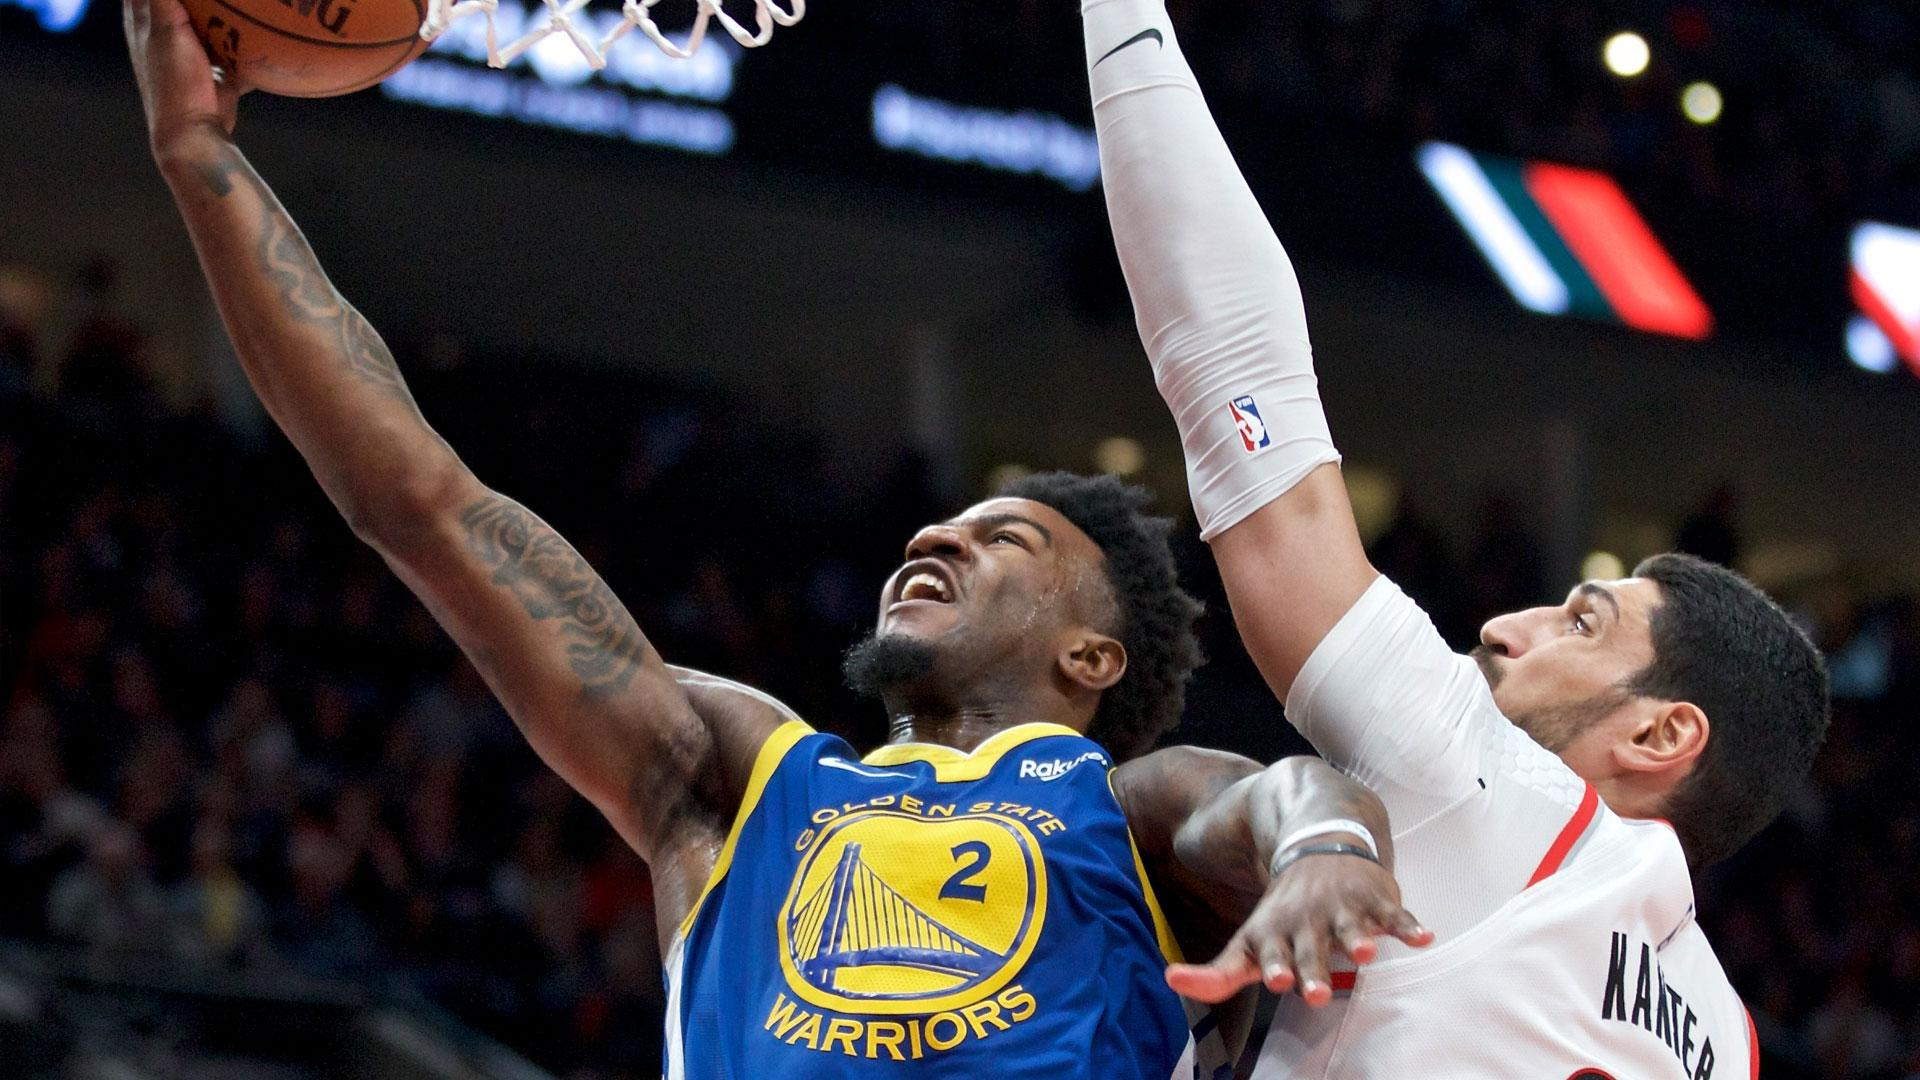 Watch Jordan Bell redeem himself after awful missed dunk in Game 3